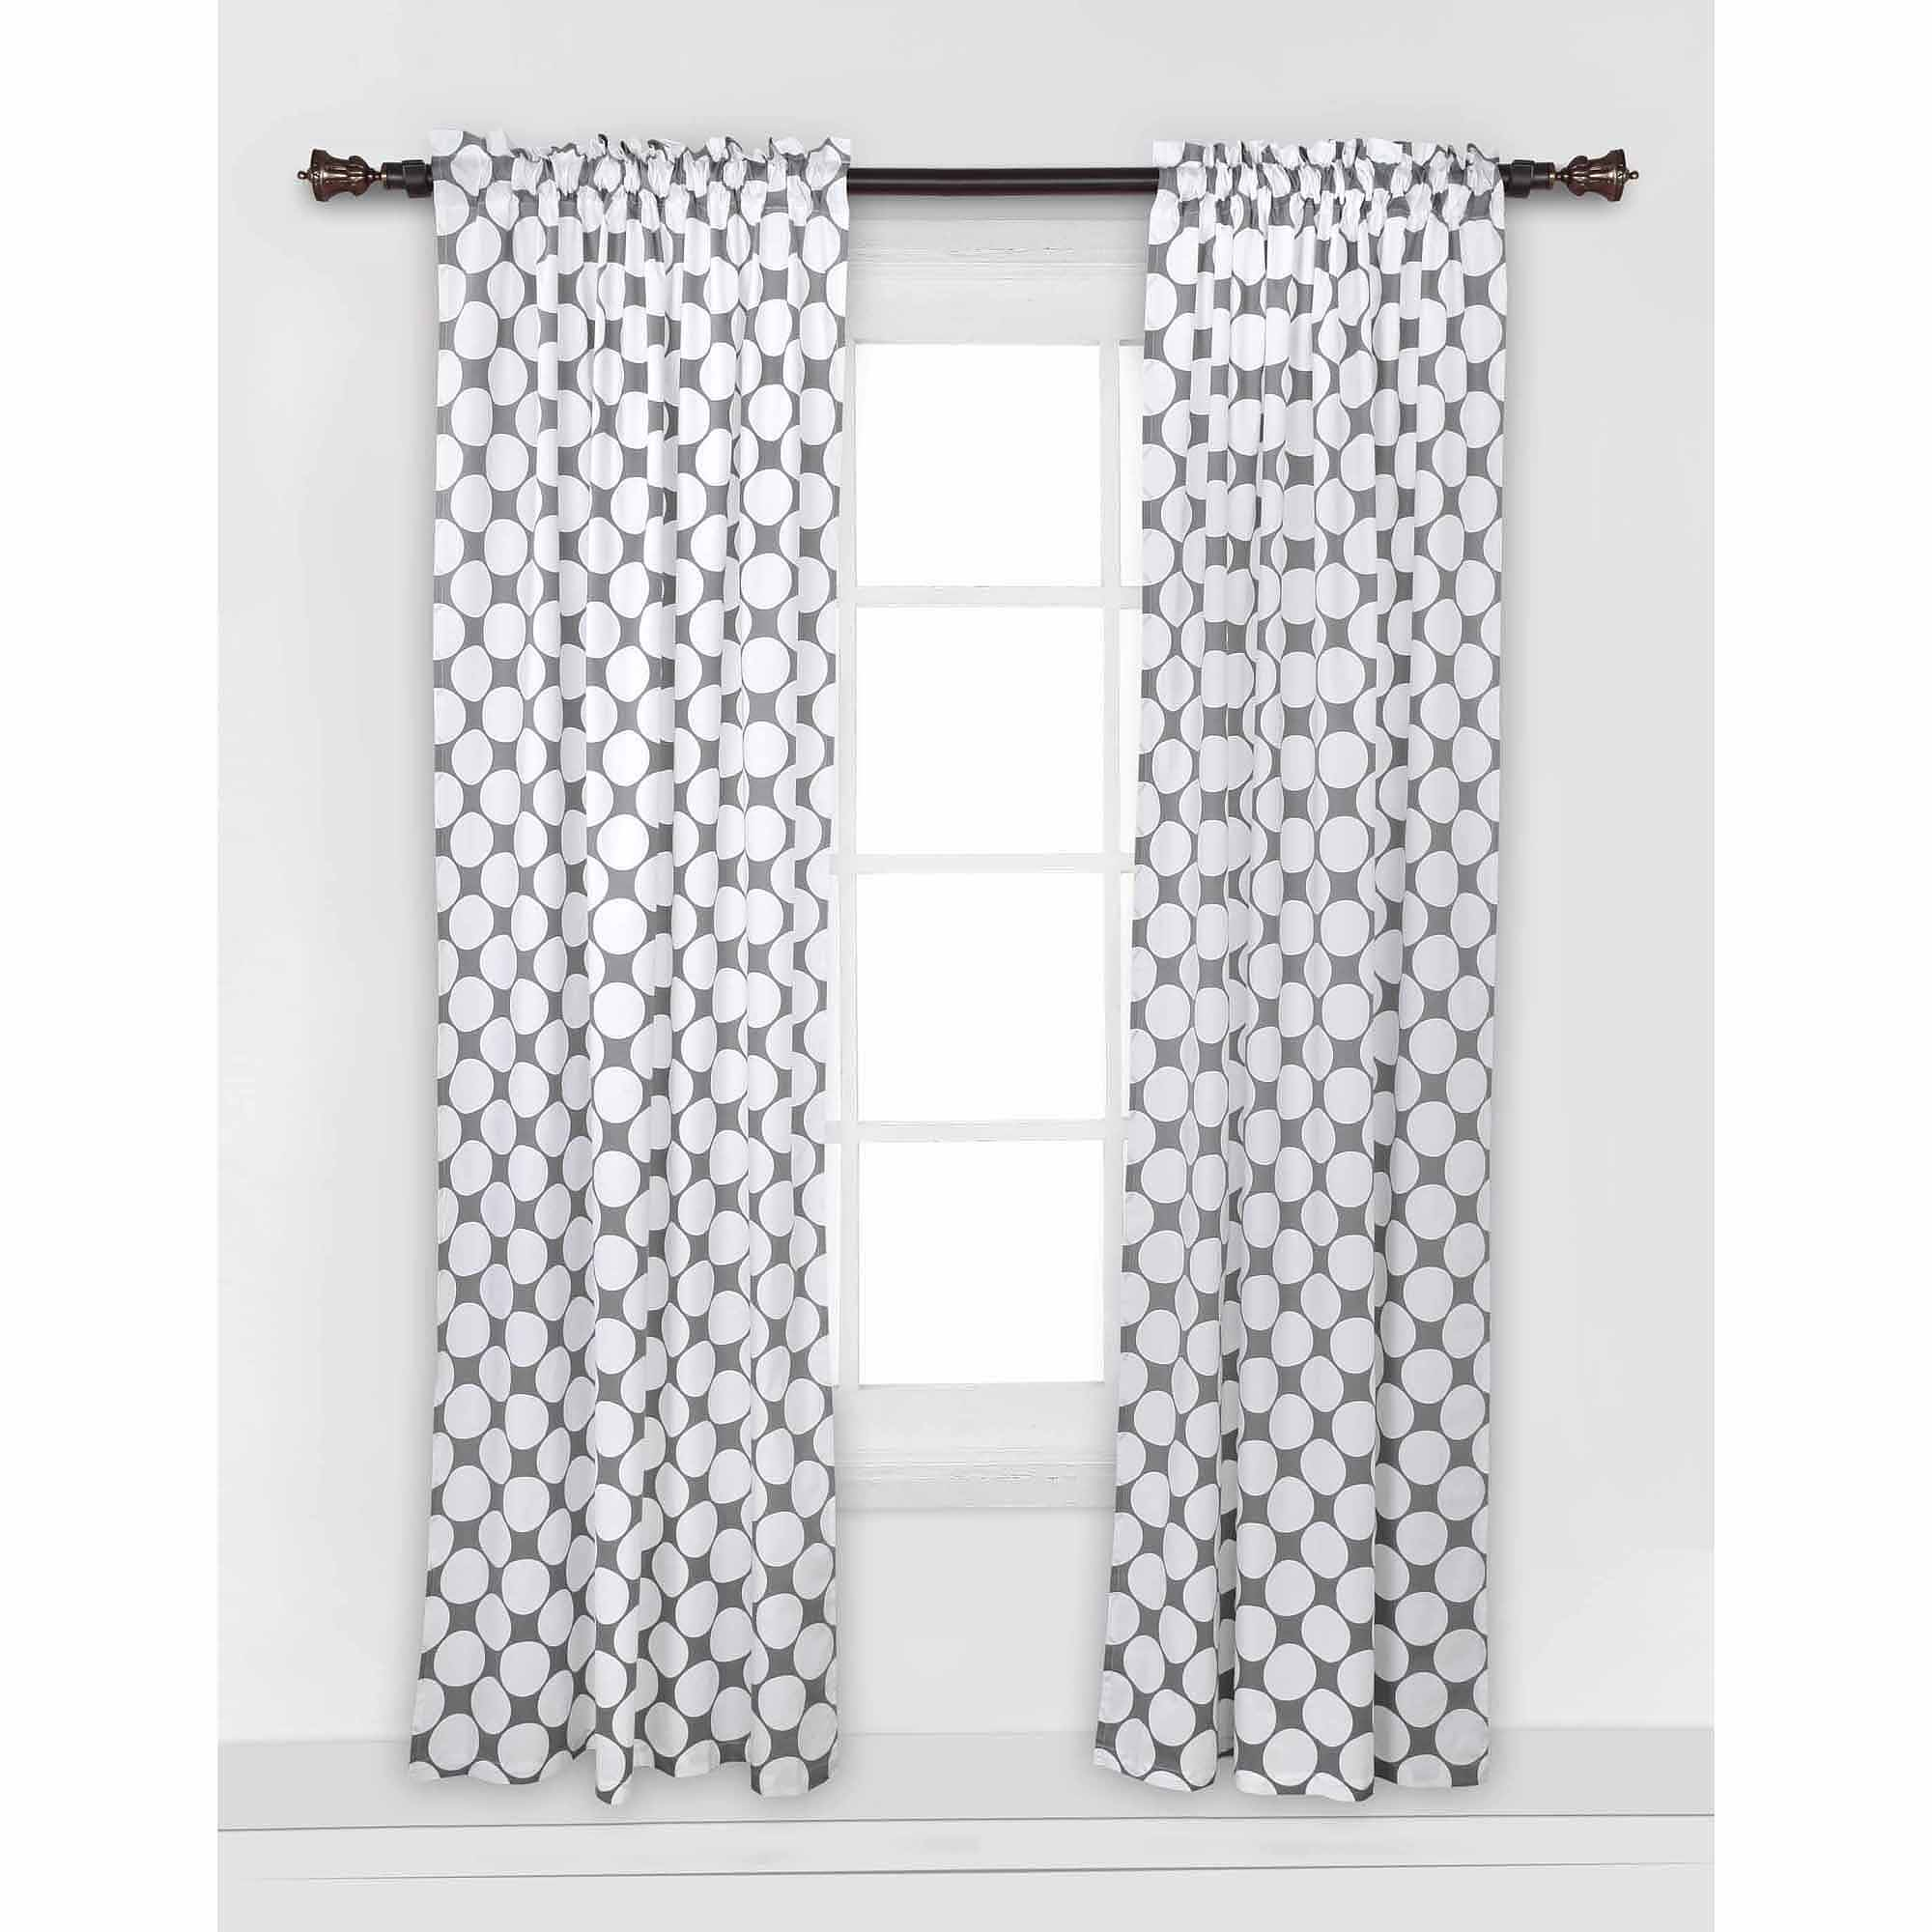 Bacati Dots/Pin Stripes Large Bacati Dots Curtain Panel, Gray